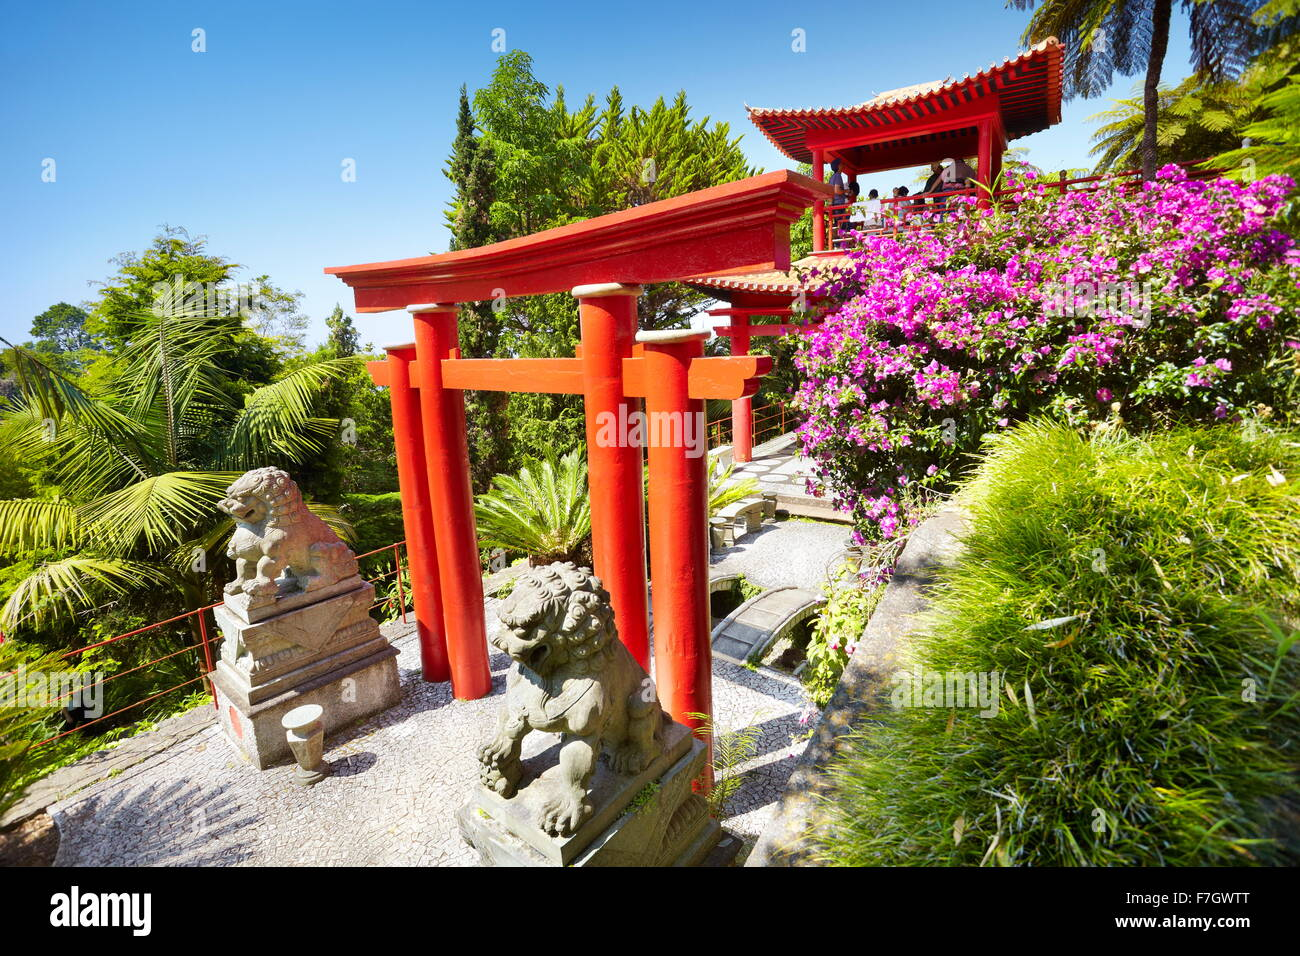 Le Japon japonais jardin tropical oriental - Monte, l'île de Madère, Portugal Photo Stock